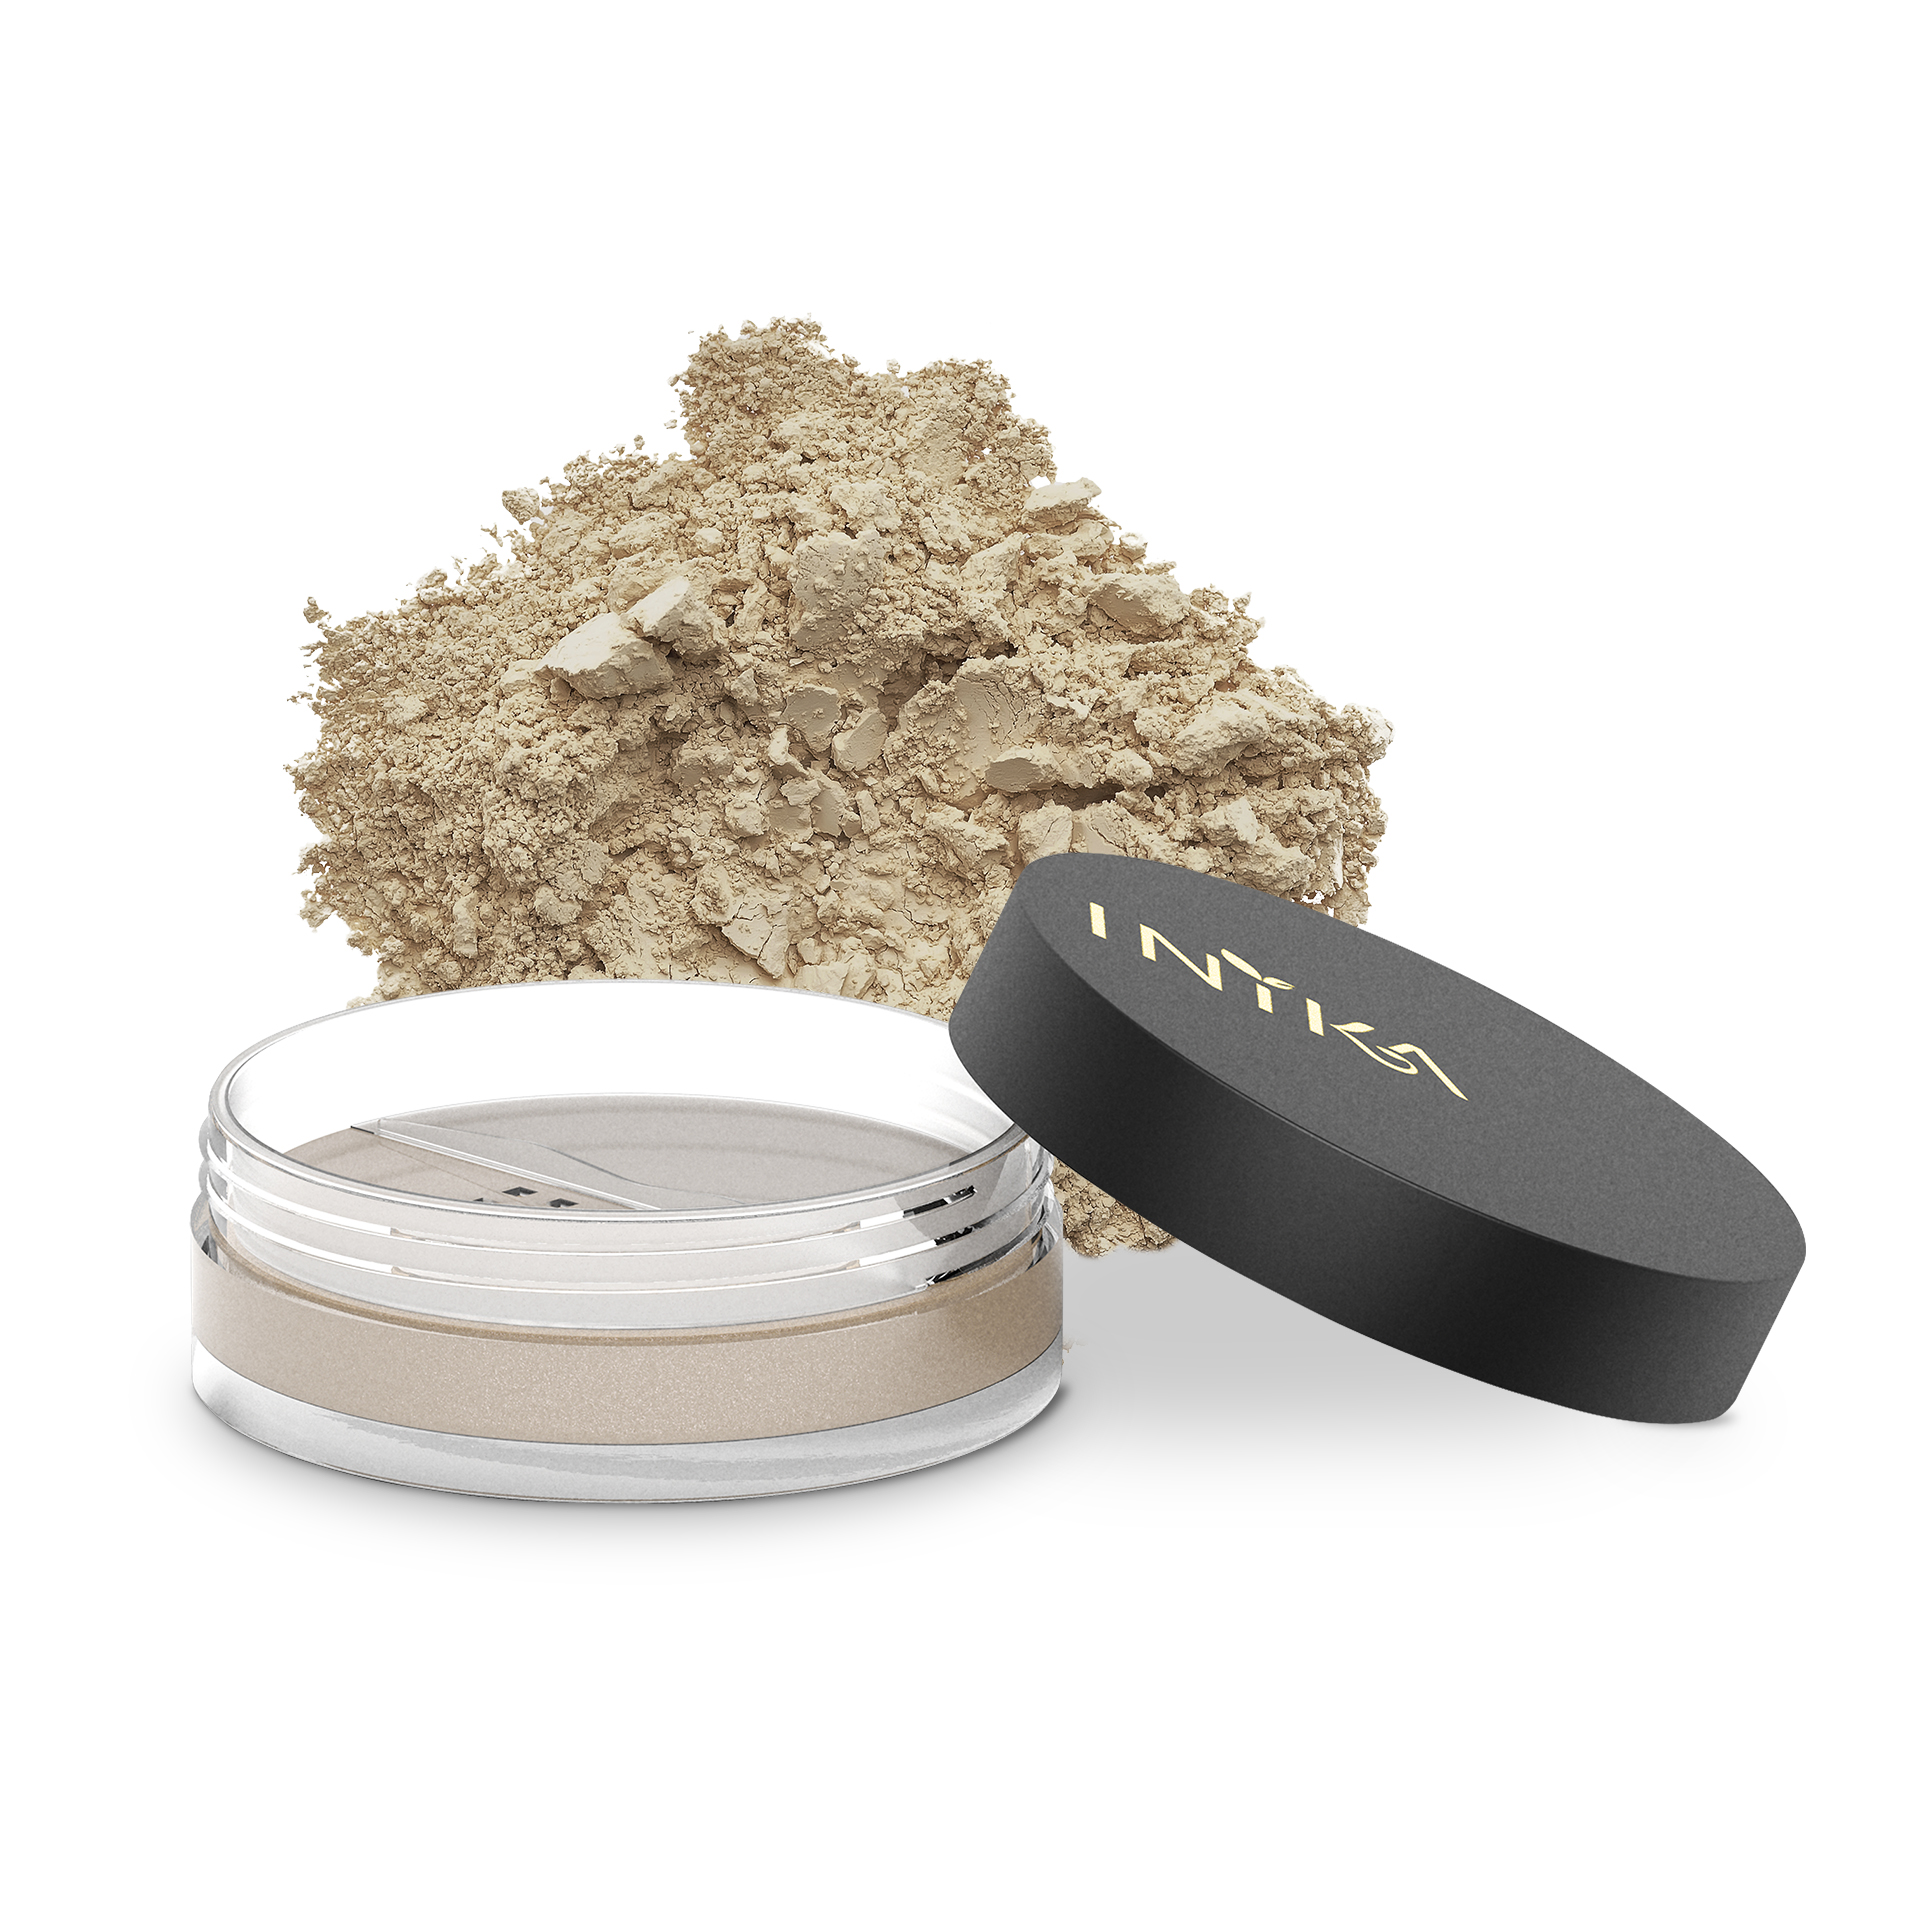 INIKA Loose Mineral Foundation 8g Nurture With Product